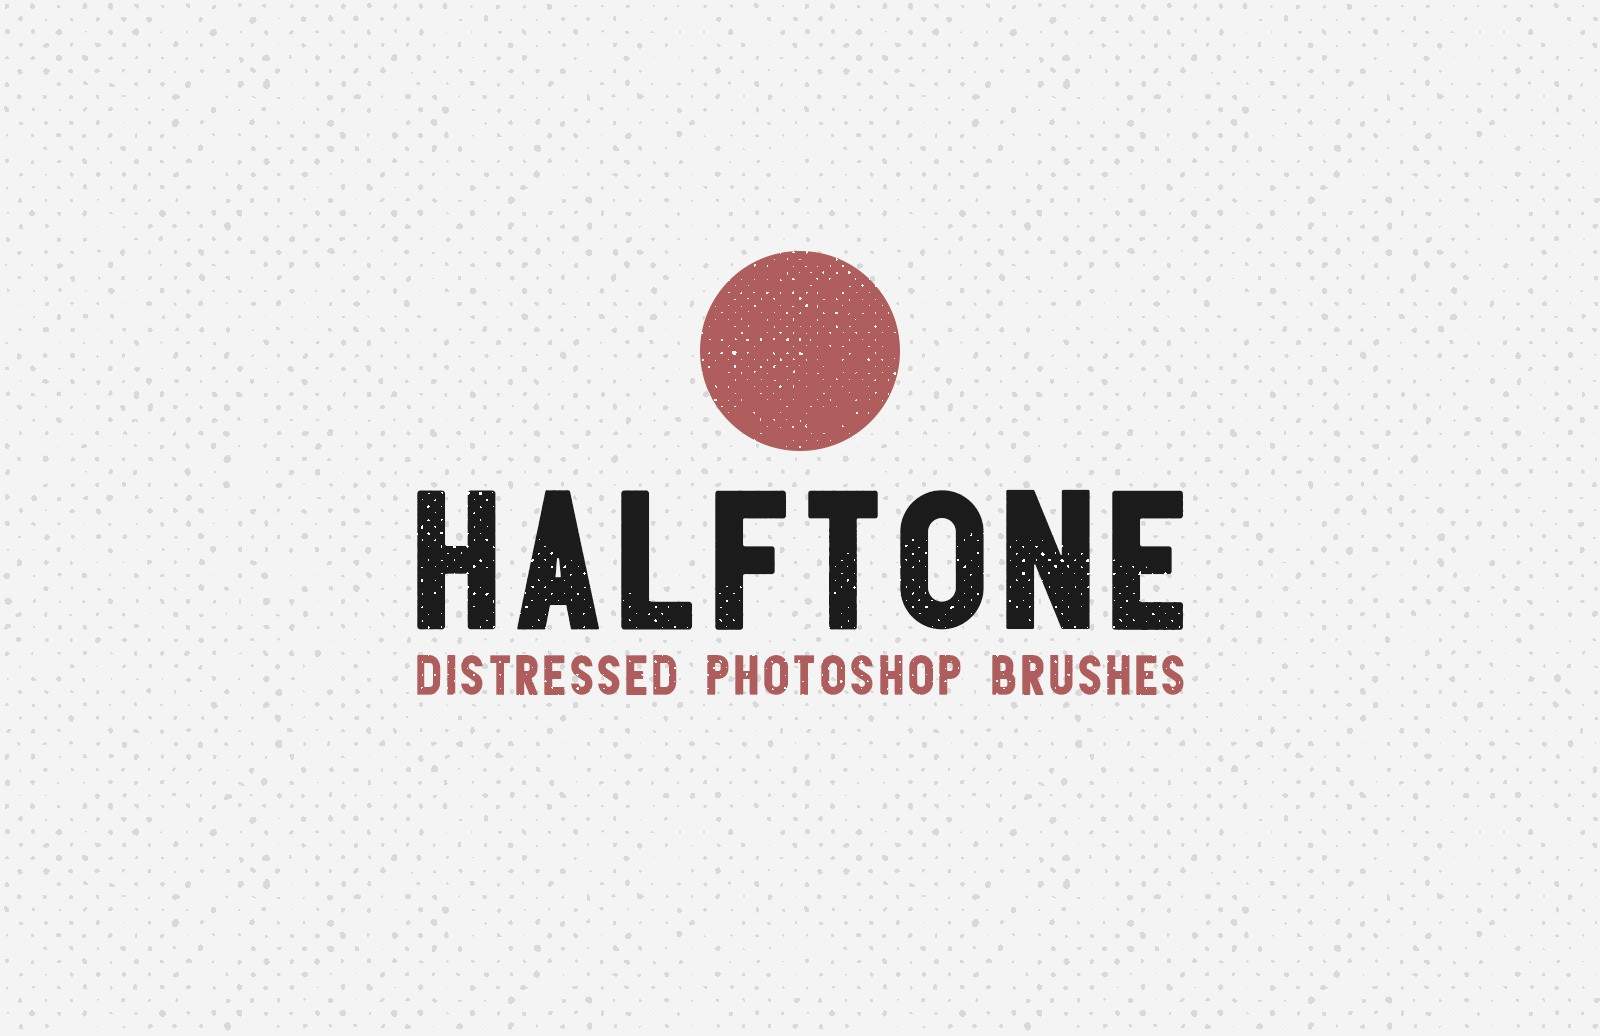 Halftone Distressed Photoshop Brushes Preview 1